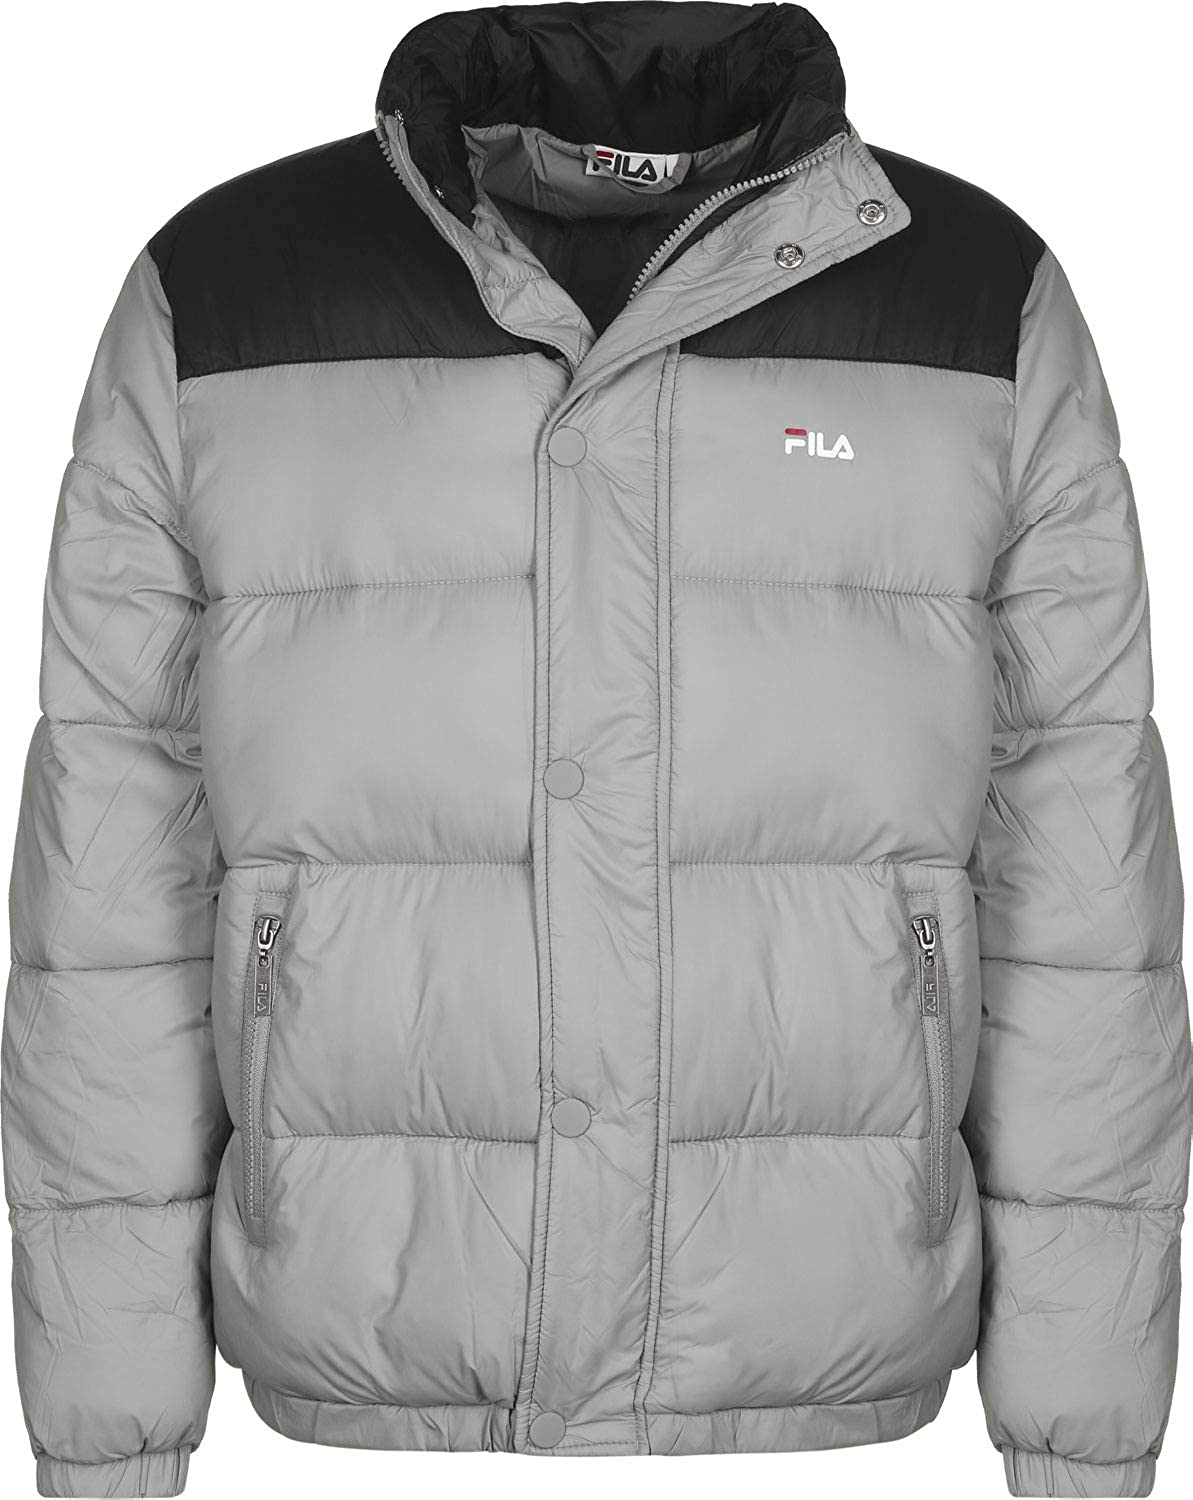 Fila Kurze Daunenjacke Herren Raith Puff Jacket 682371: Amazon.de ...